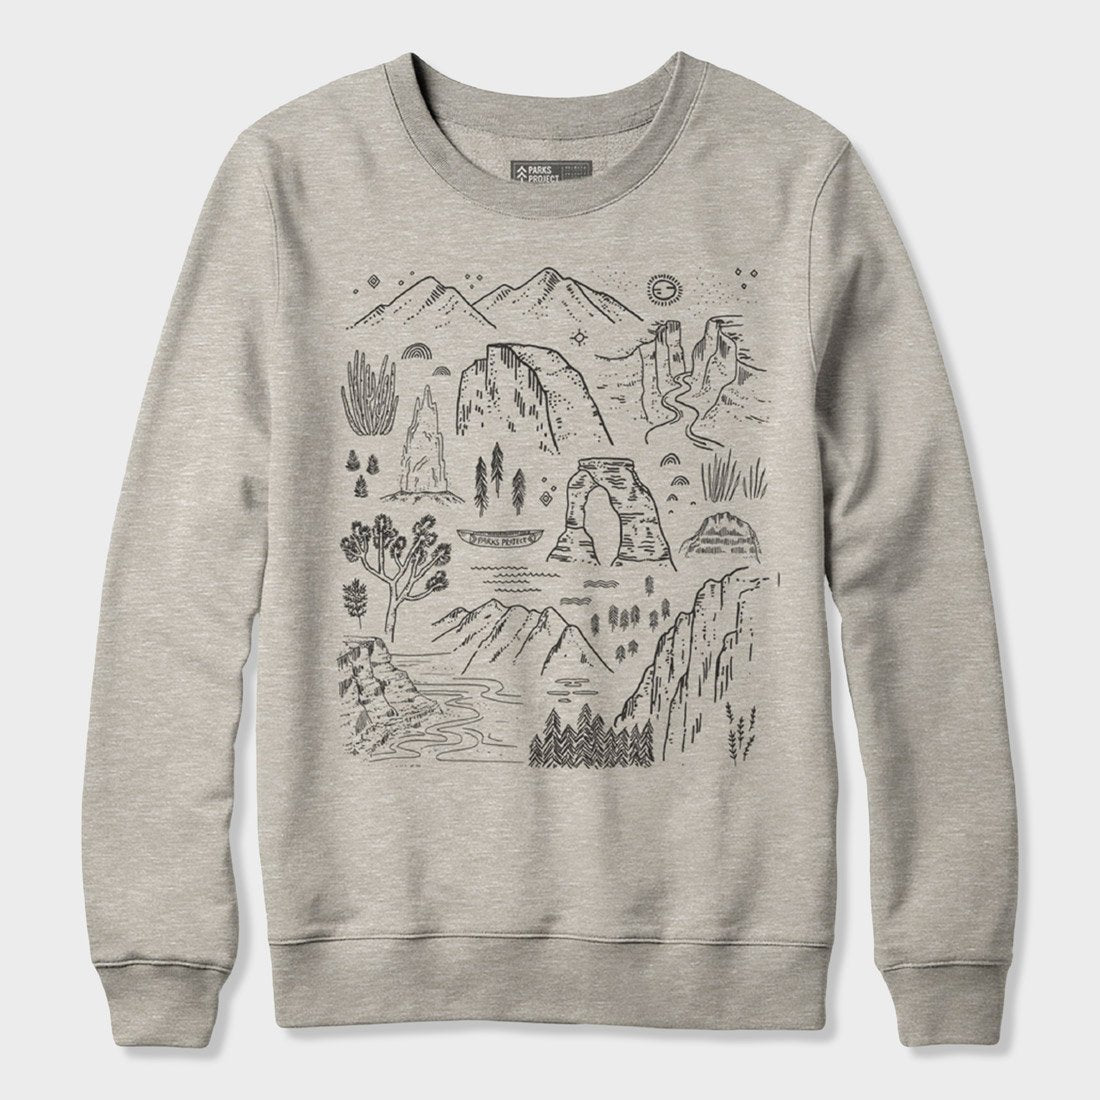 Parks Project Iconic NP's Crew Sweatshirt Heather Oatmeal